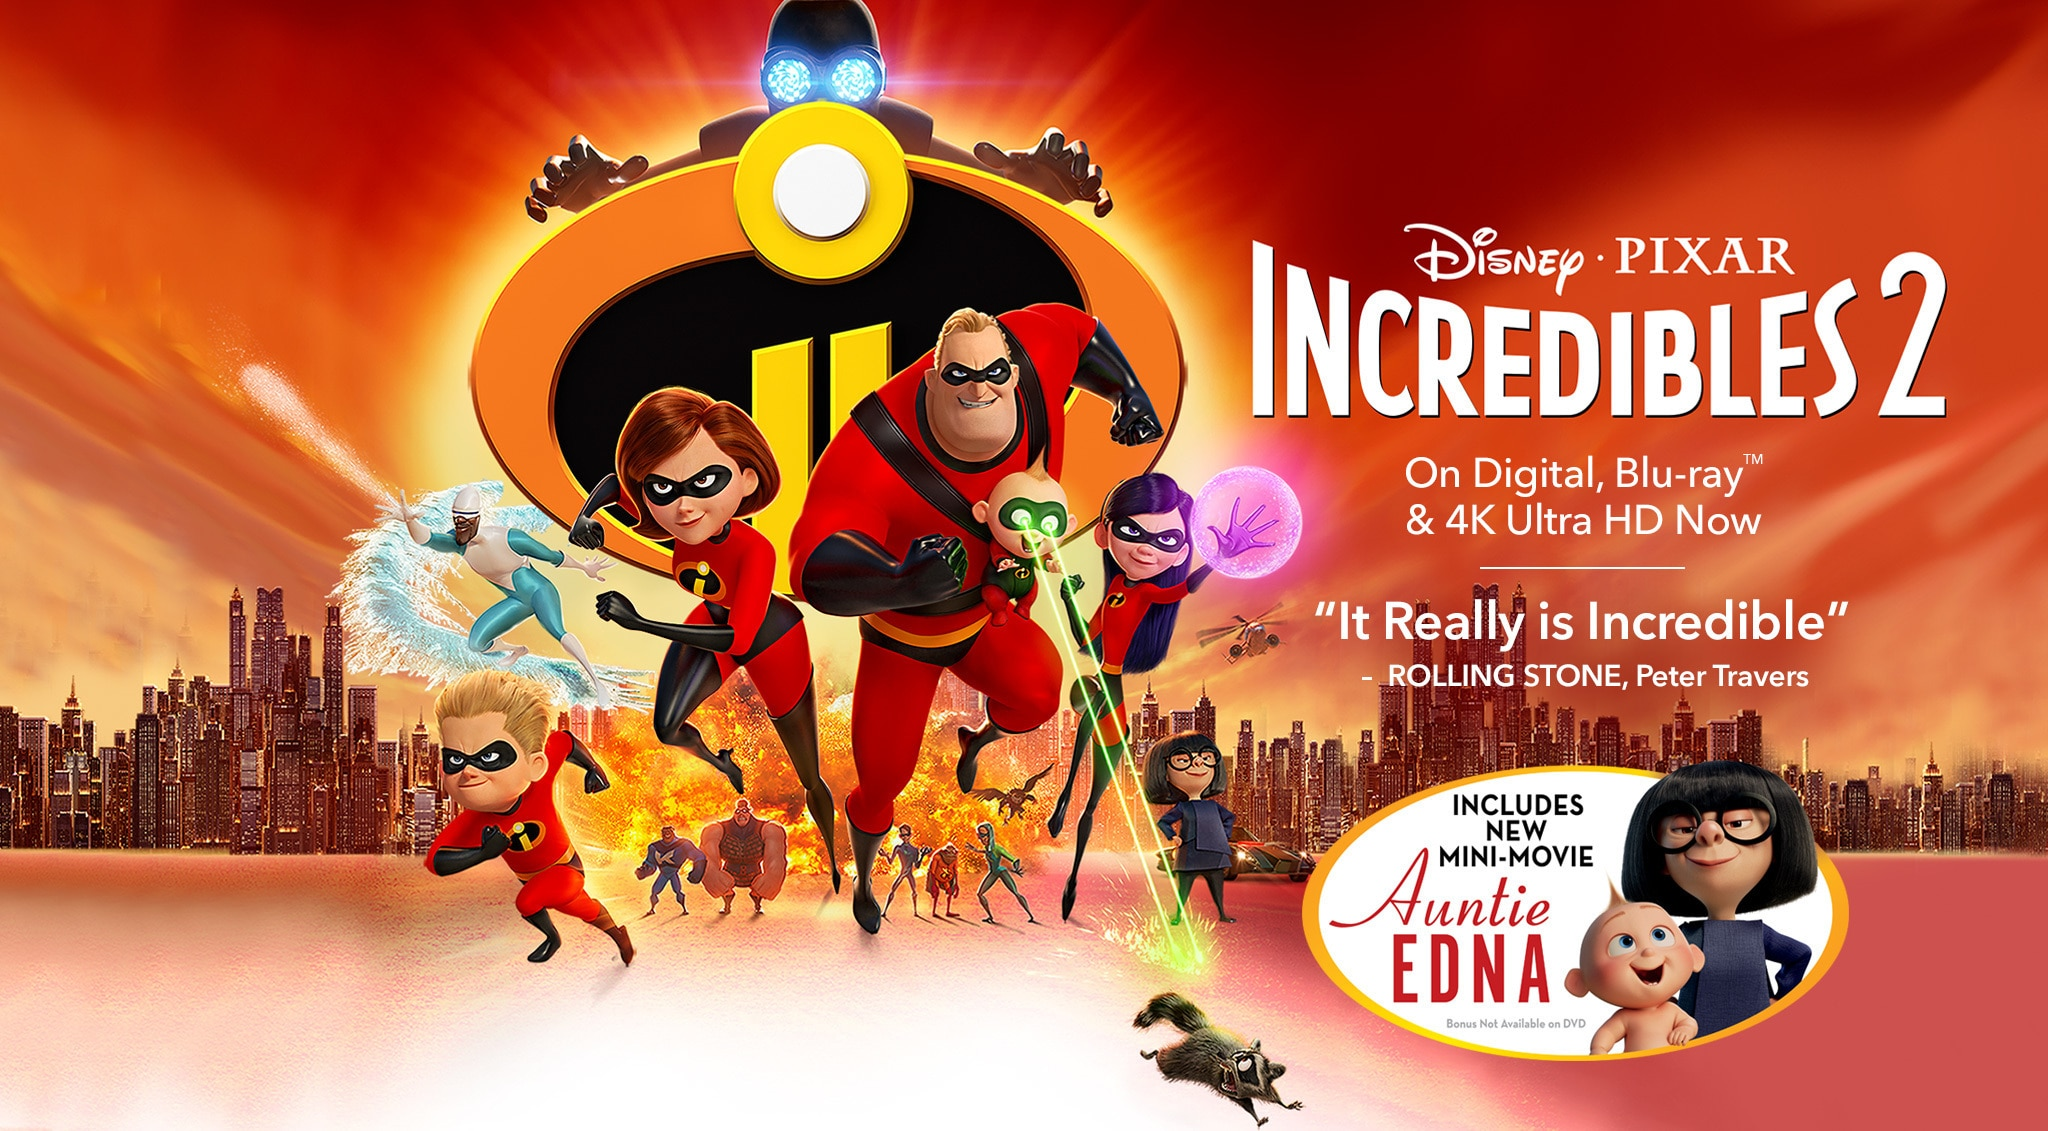 Disney • Pixar Incredibles 2 - On Digital, Blu-ray(TM) & 4K Ultra HD Now